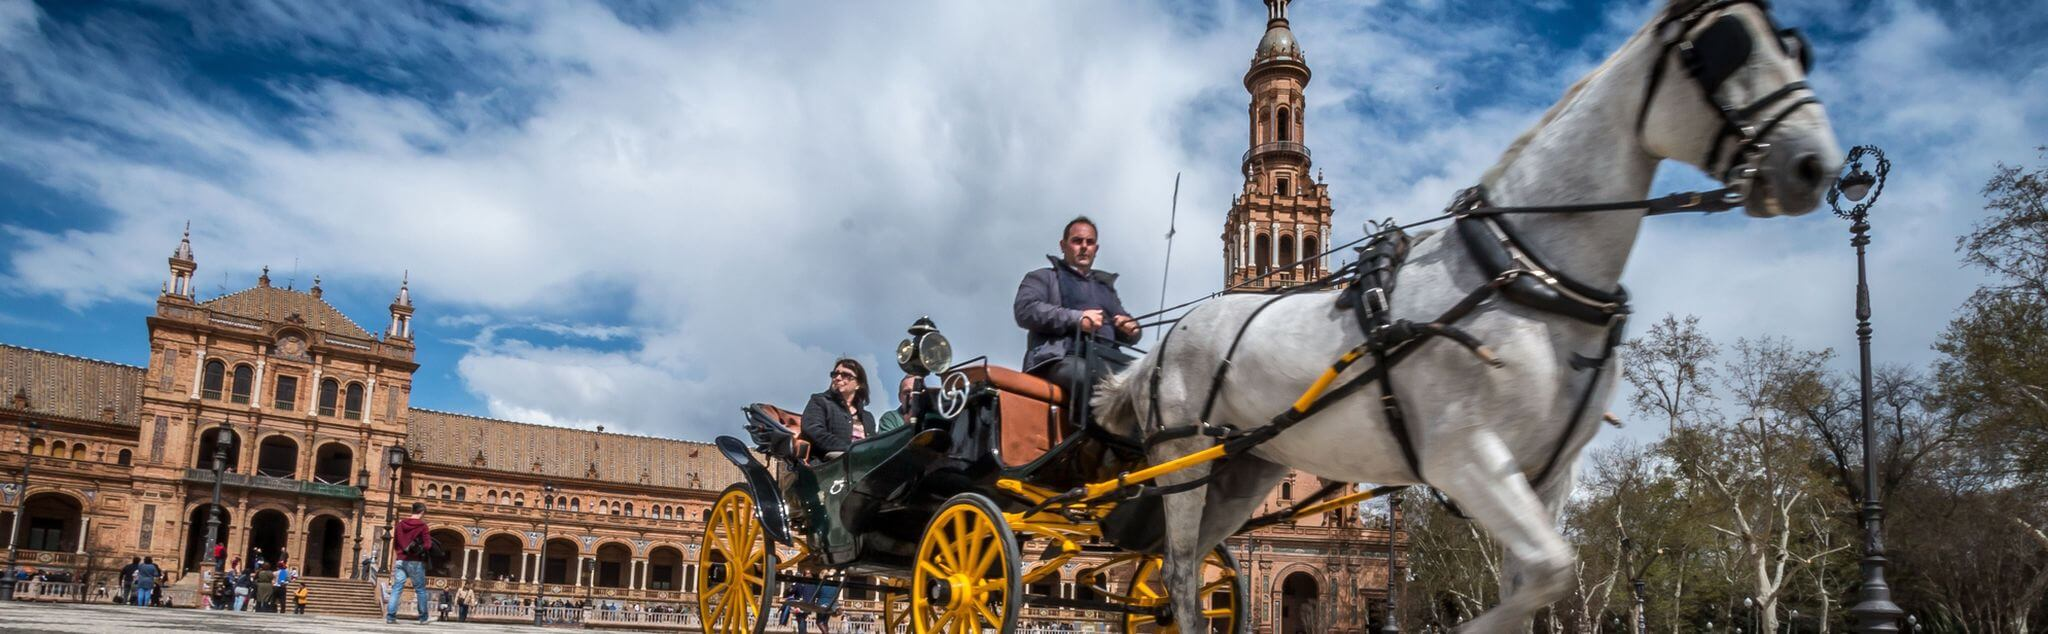 Carriage Riding in Lleida